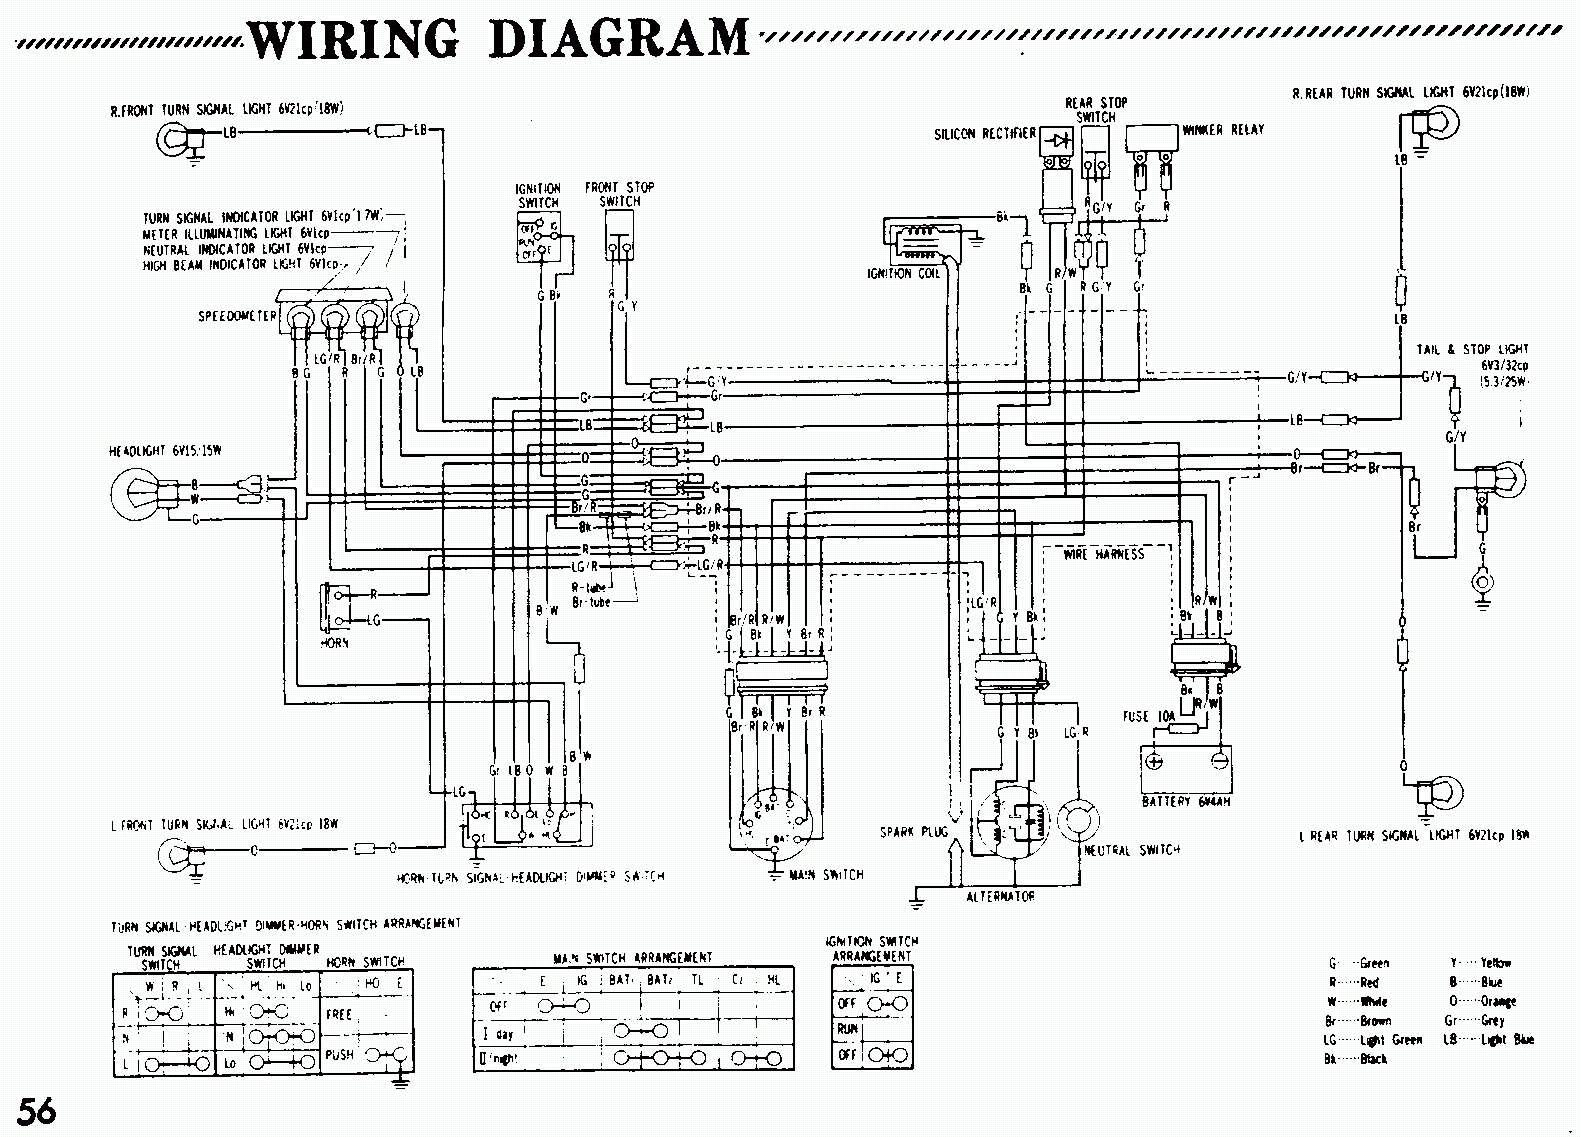 Honda Sl70 Wiring - Wiring Diagram All Data on yamaha xs650 wiring diagram, honda cl350 engine, honda cb360 wiring-diagram, honda cbr600rr wiring-diagram, yamaha warrior 350 wiring diagram, kawasaki ex500 wiring diagram, yamaha rz350 wiring diagram, suzuki gt550 wiring diagram, honda ct70 wiring-diagram, suzuki gs450 wiring diagram, honda cb750 wiring-diagram, honda motorcycle wiring diagrams, suzuki gt750 wiring diagram, honda ct110 wiring-diagram, honda cx500 wiring-diagram, honda sl125 wiring-diagram, honda cl350 carburetor, honda cl350 frame diagram, yamaha xs850 wiring diagram, honda ct90 wiring-diagram,